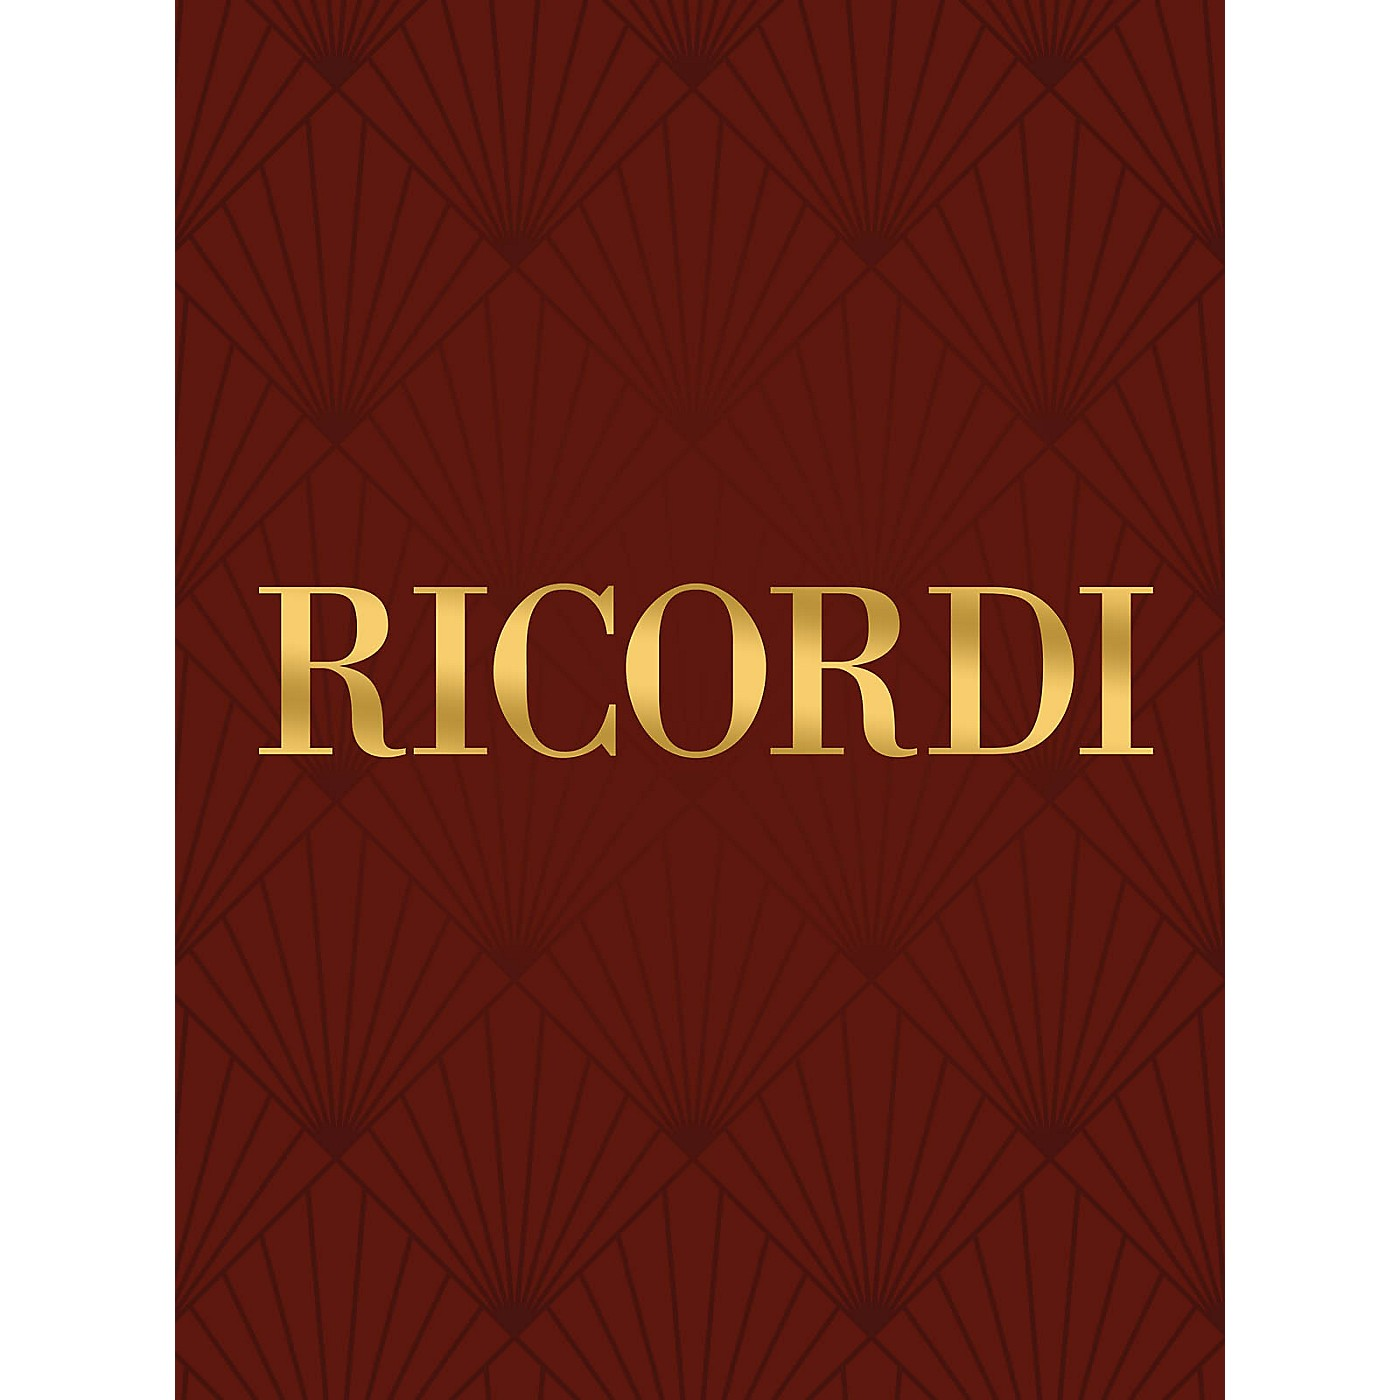 Ricordi 12 Sonatinas (Op. 20, 55 and 59) Piano Collection Composed by Francesco Kuhlau Edited by Ettore Pozzoli thumbnail